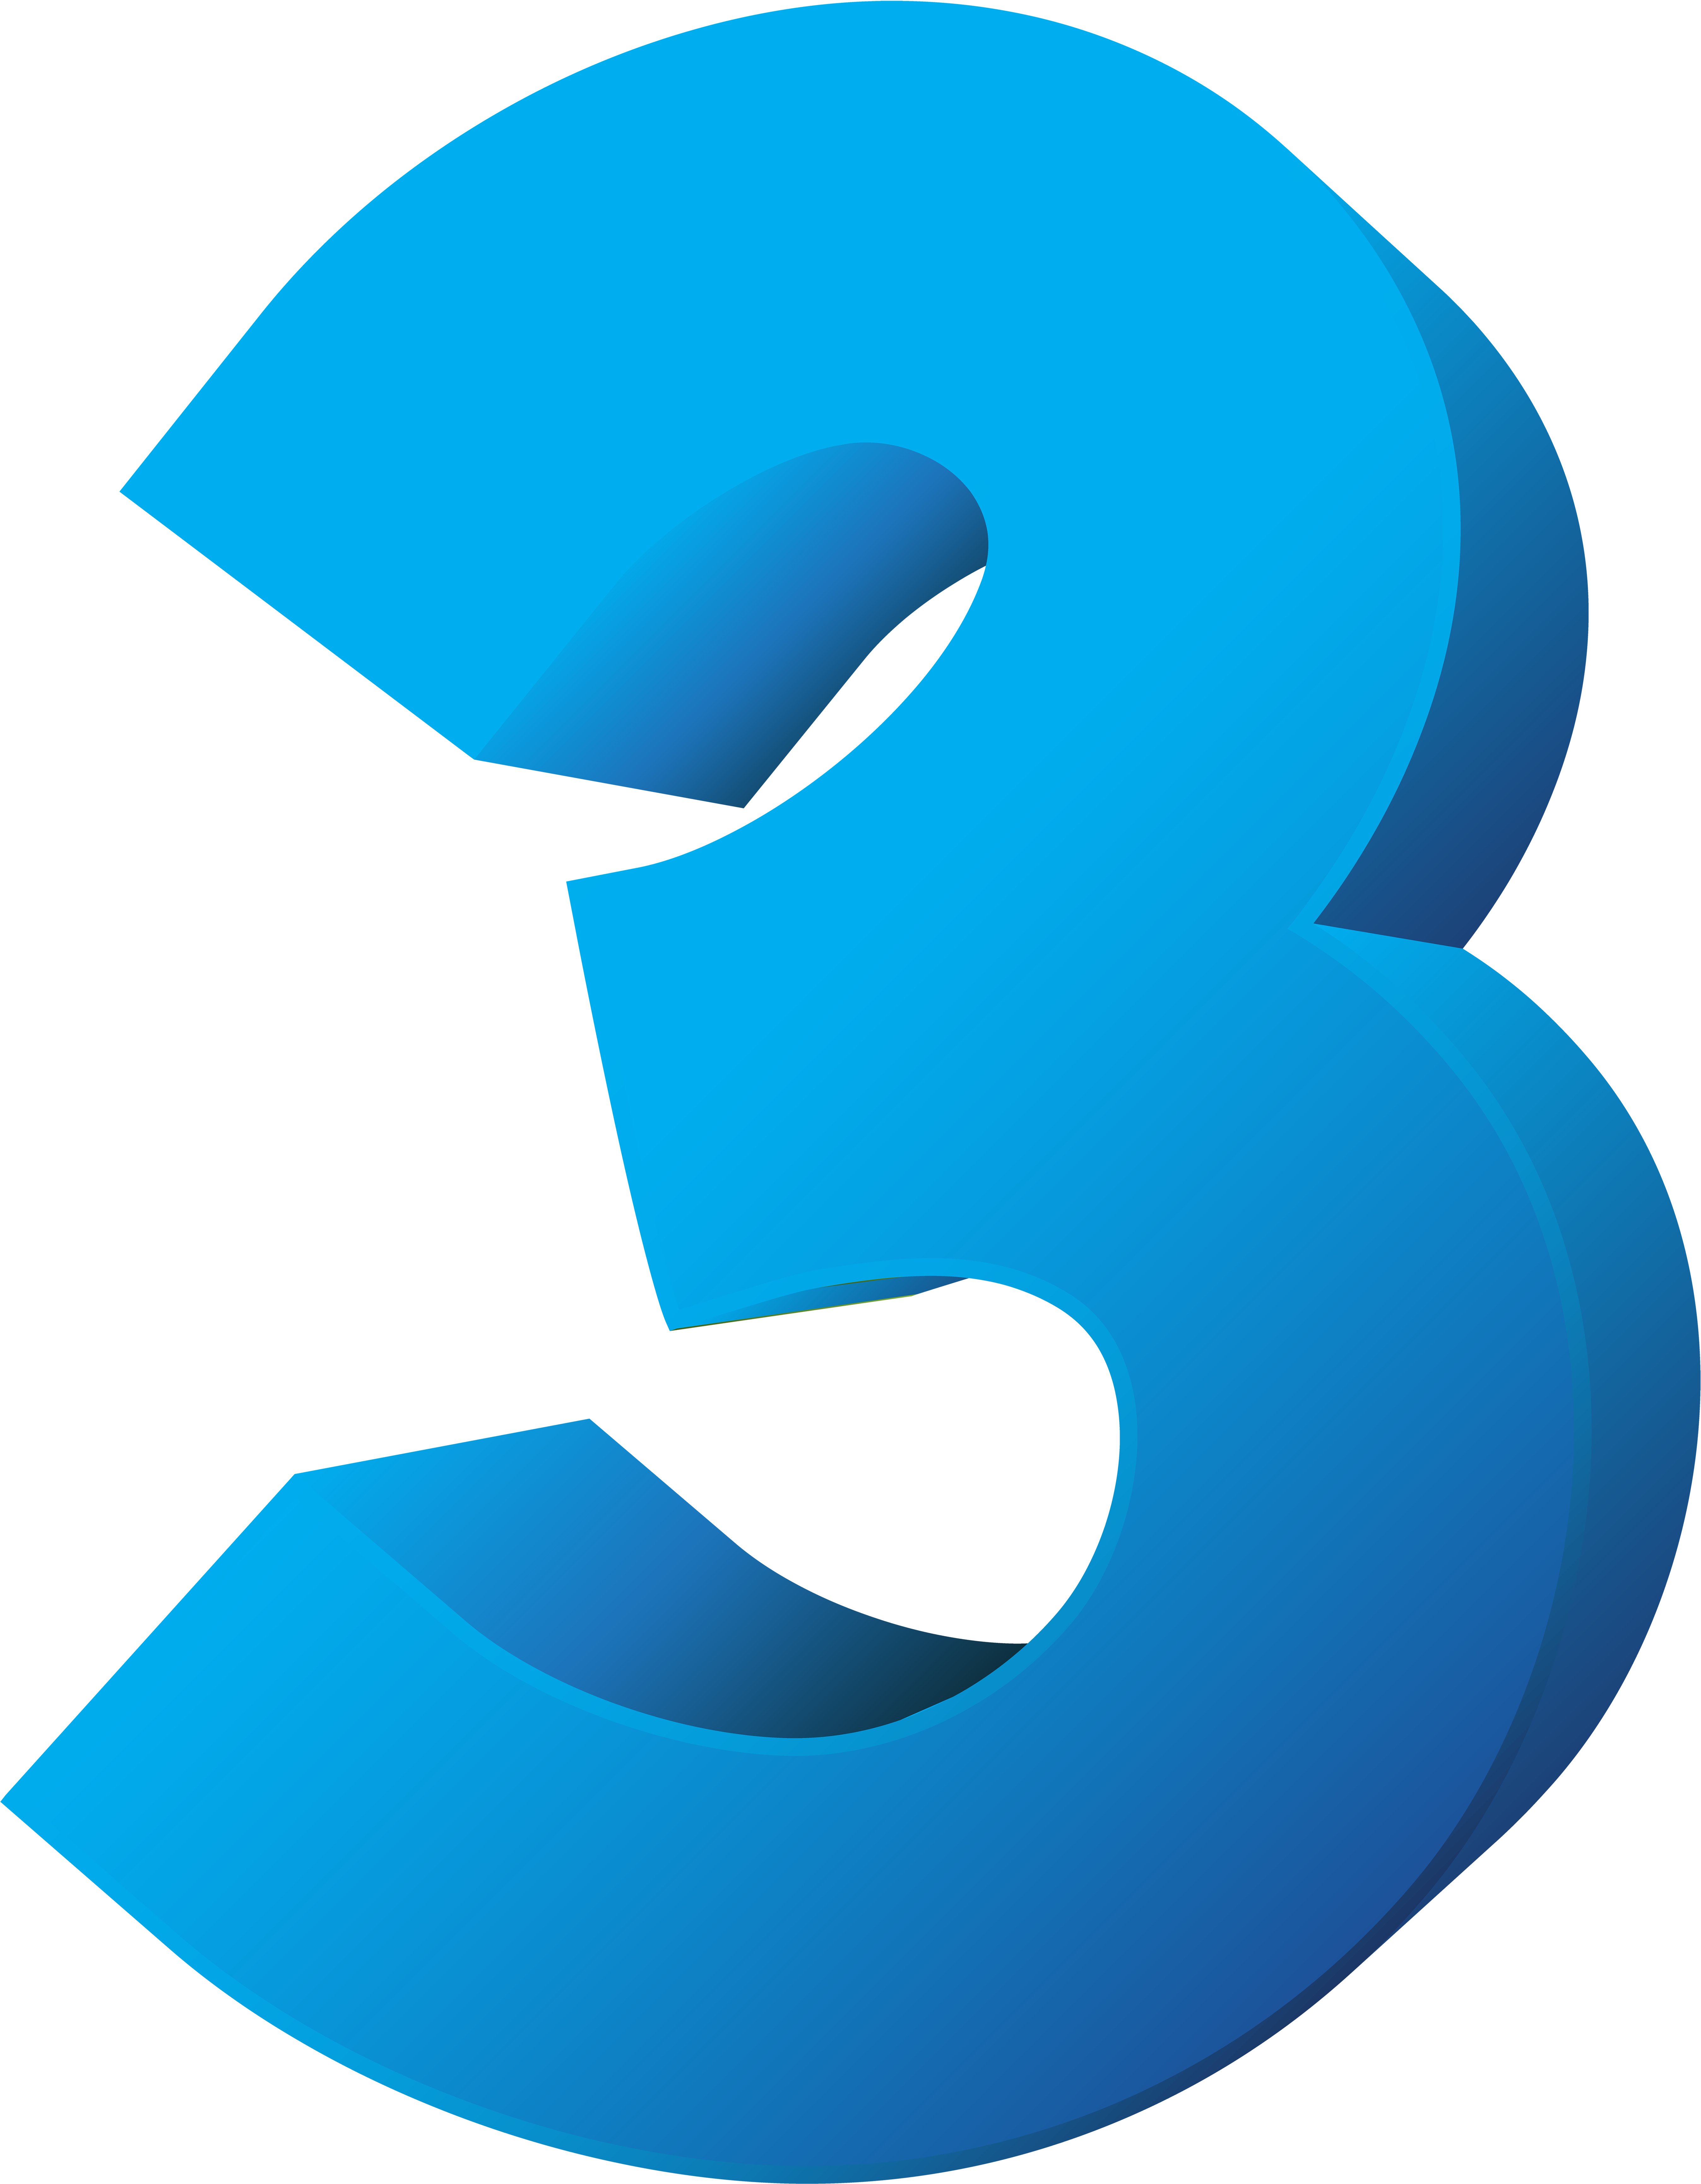 Number clipart blue.